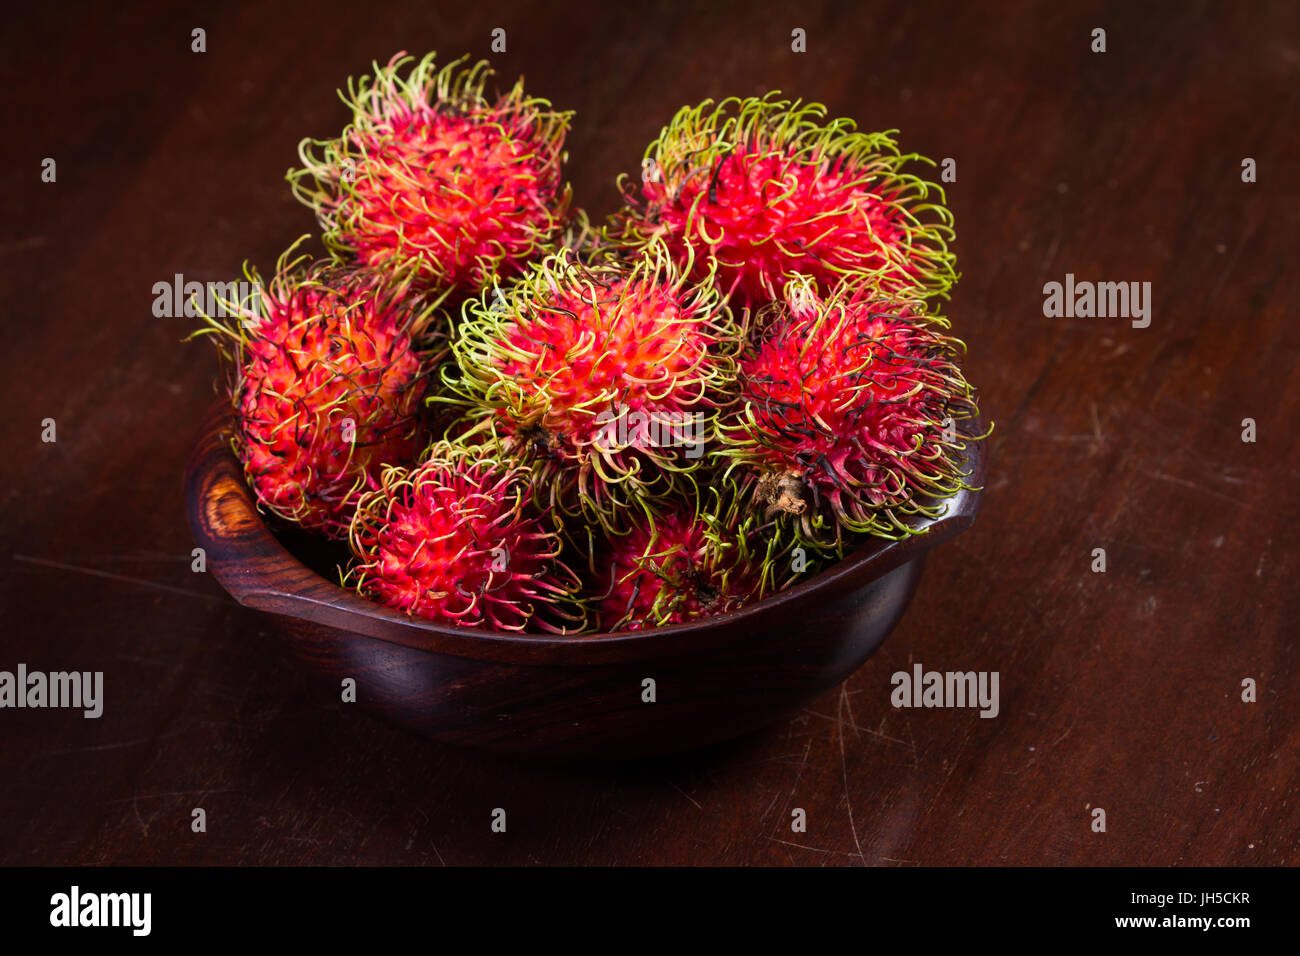 wooden bowl filled with rambutan placed on a wooden table, Rambutan is a sweet tropical fruit. - Stock Image